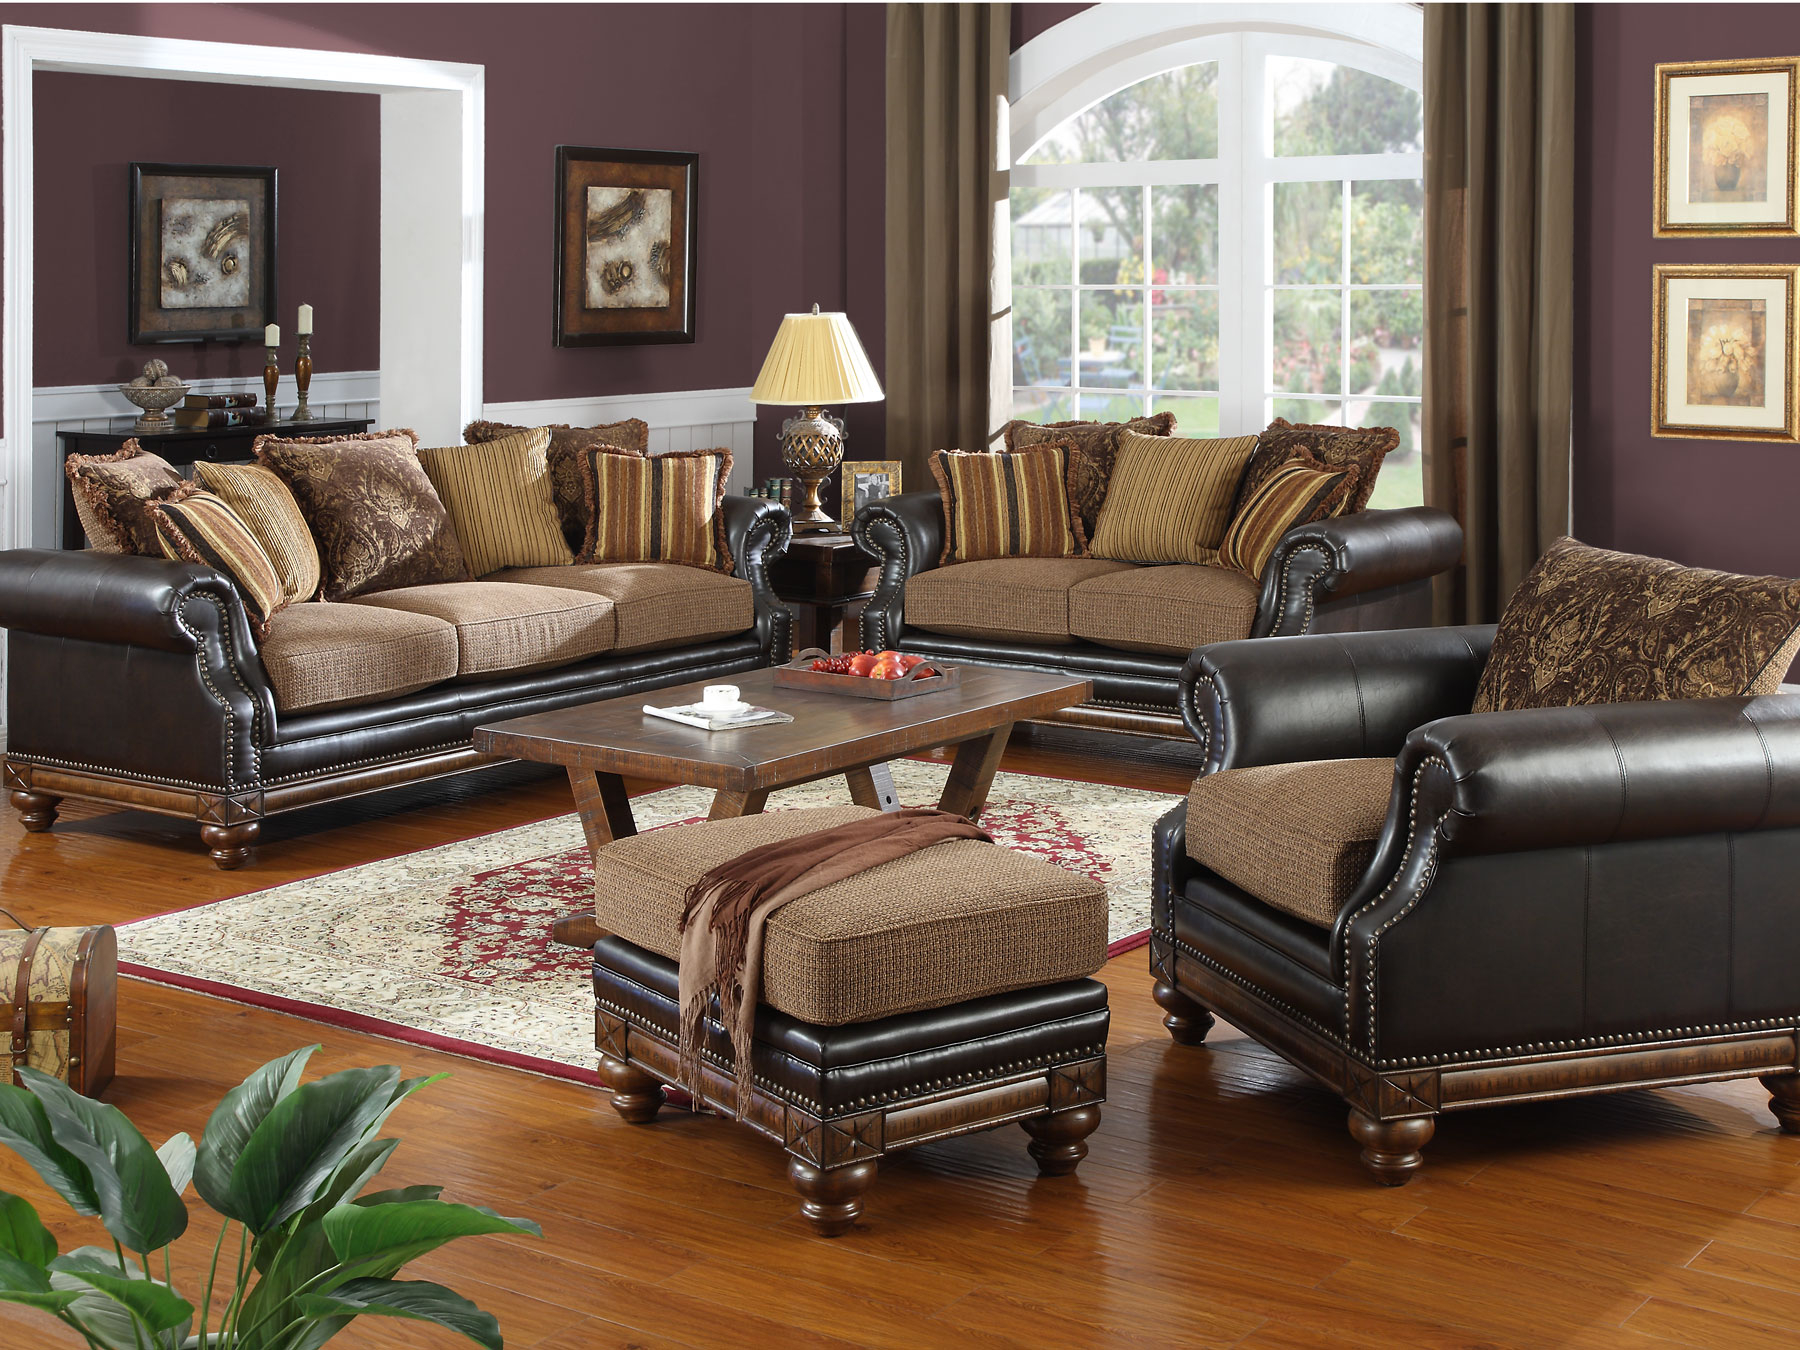 A Complete Guide To Buy Furniture Living Room Sets Elites Home Decor regarding Cheap Leather Living Room Sets